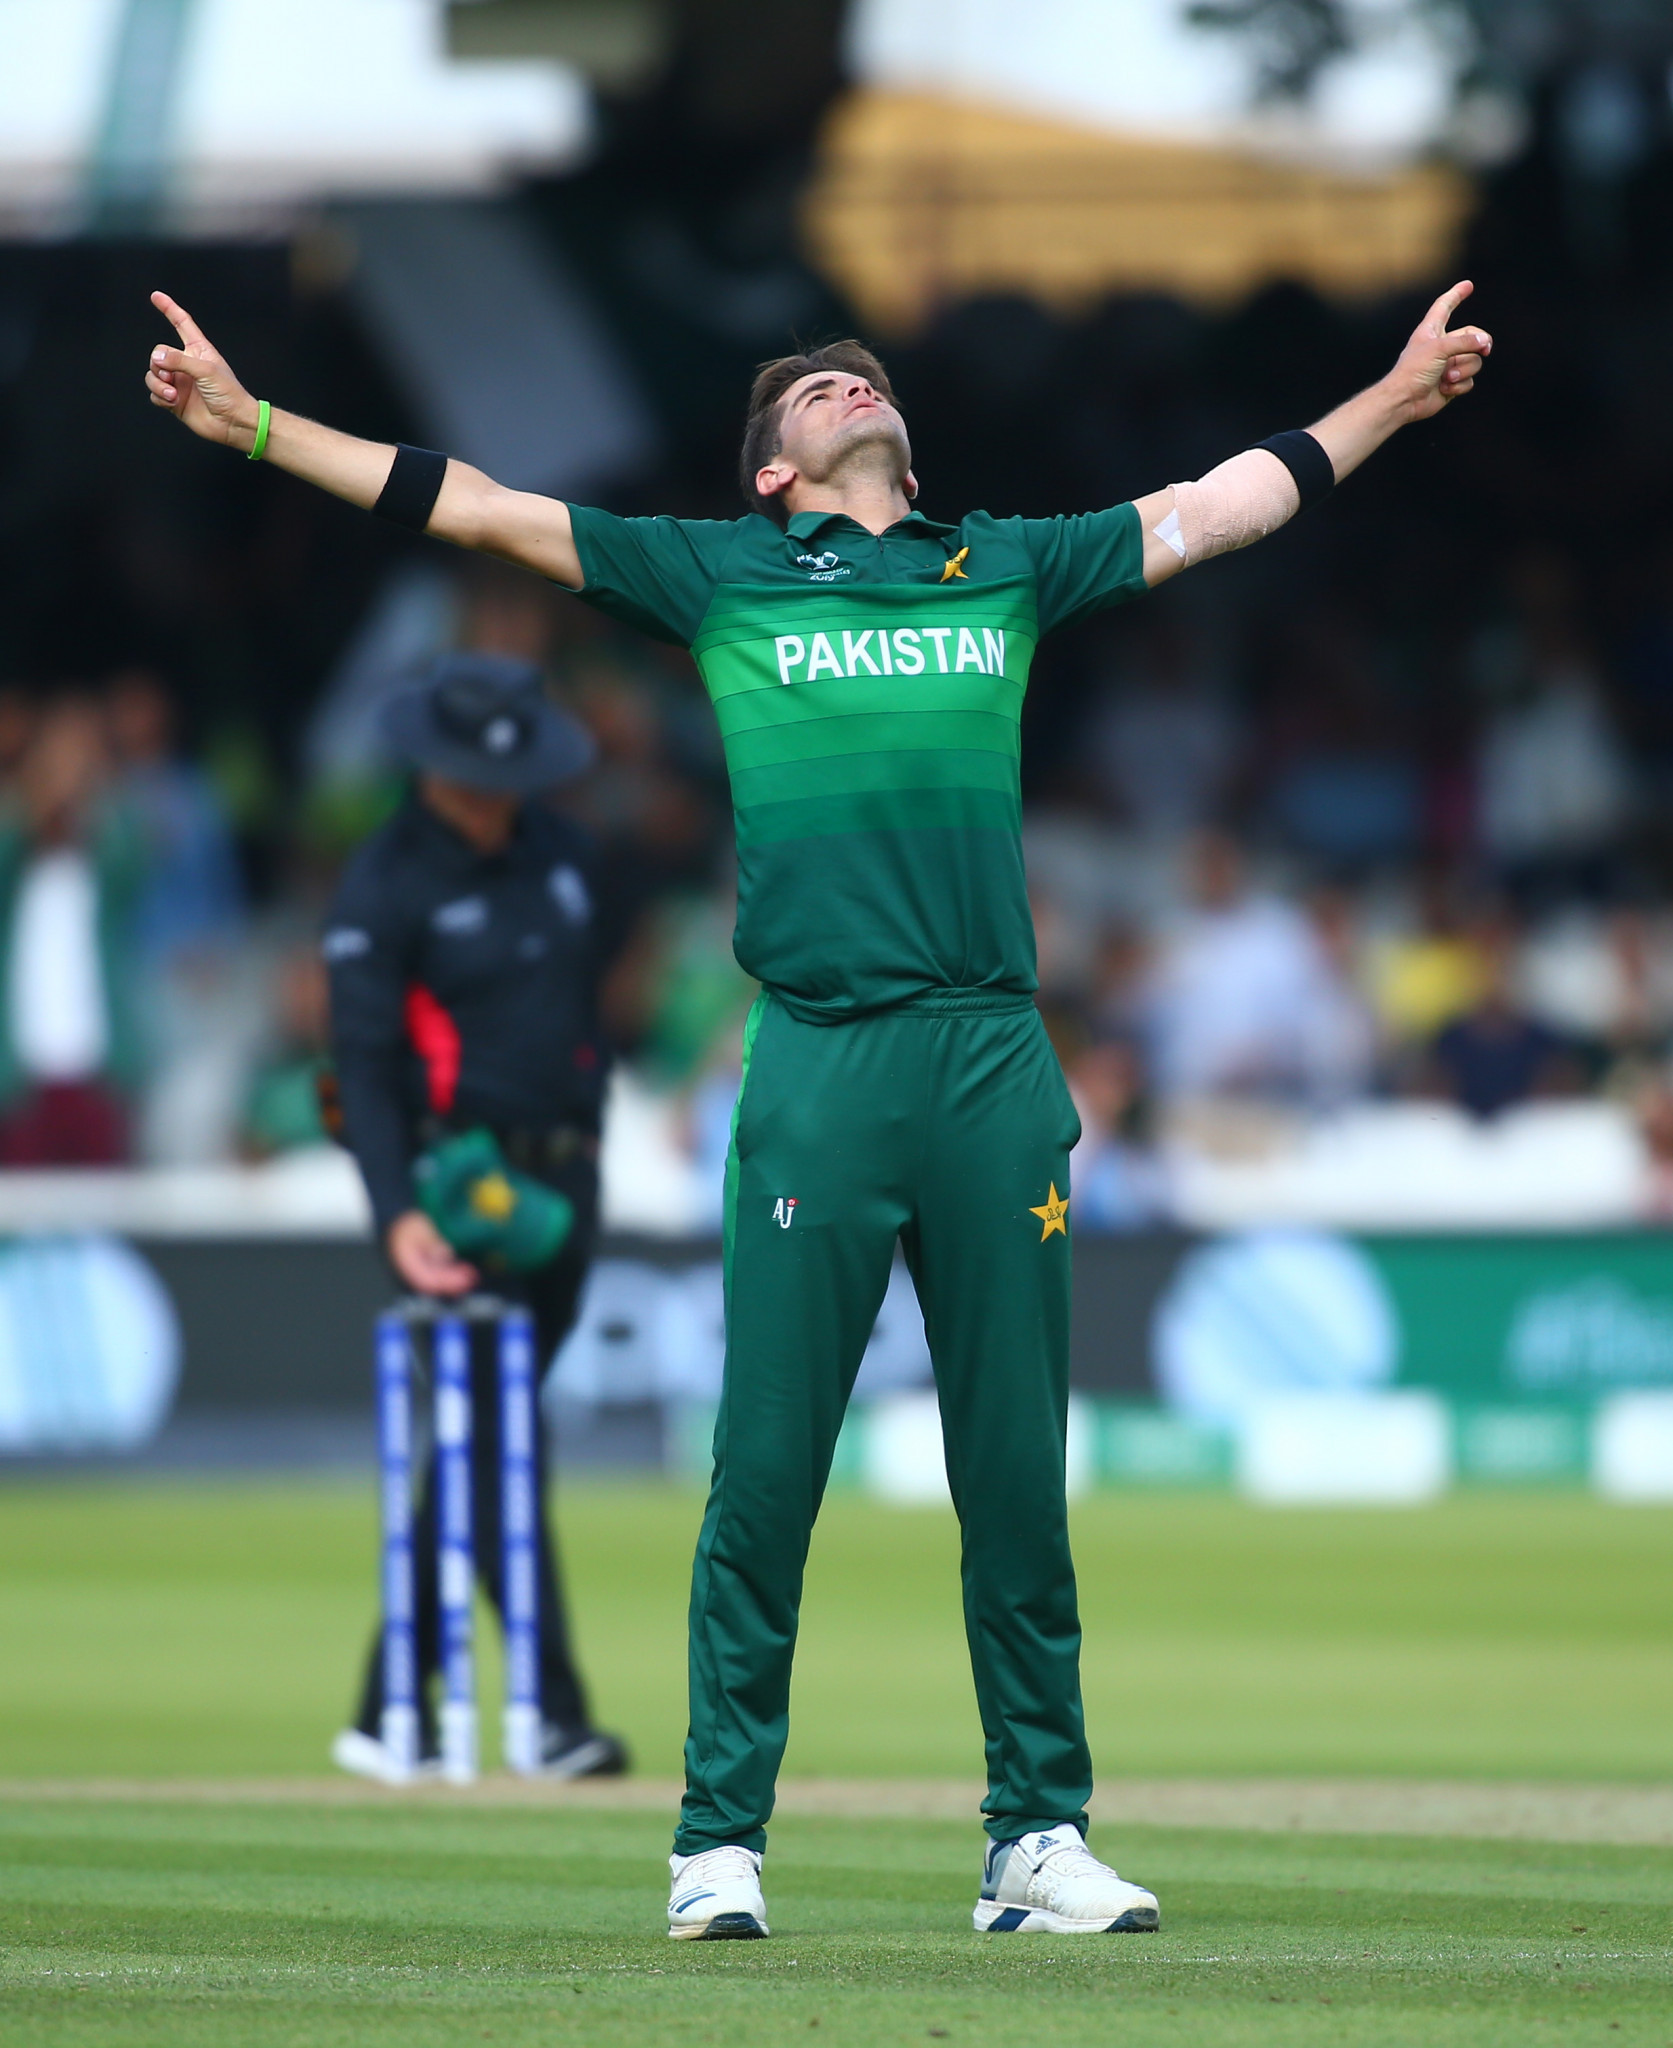 Pakistan's 19-year-old Shaheen Afridi took 6-35 – the best figures so far in the ICC Cricket World Cup – as his side bowed out with a win against Bangladesh at Lord's ©Getty Images